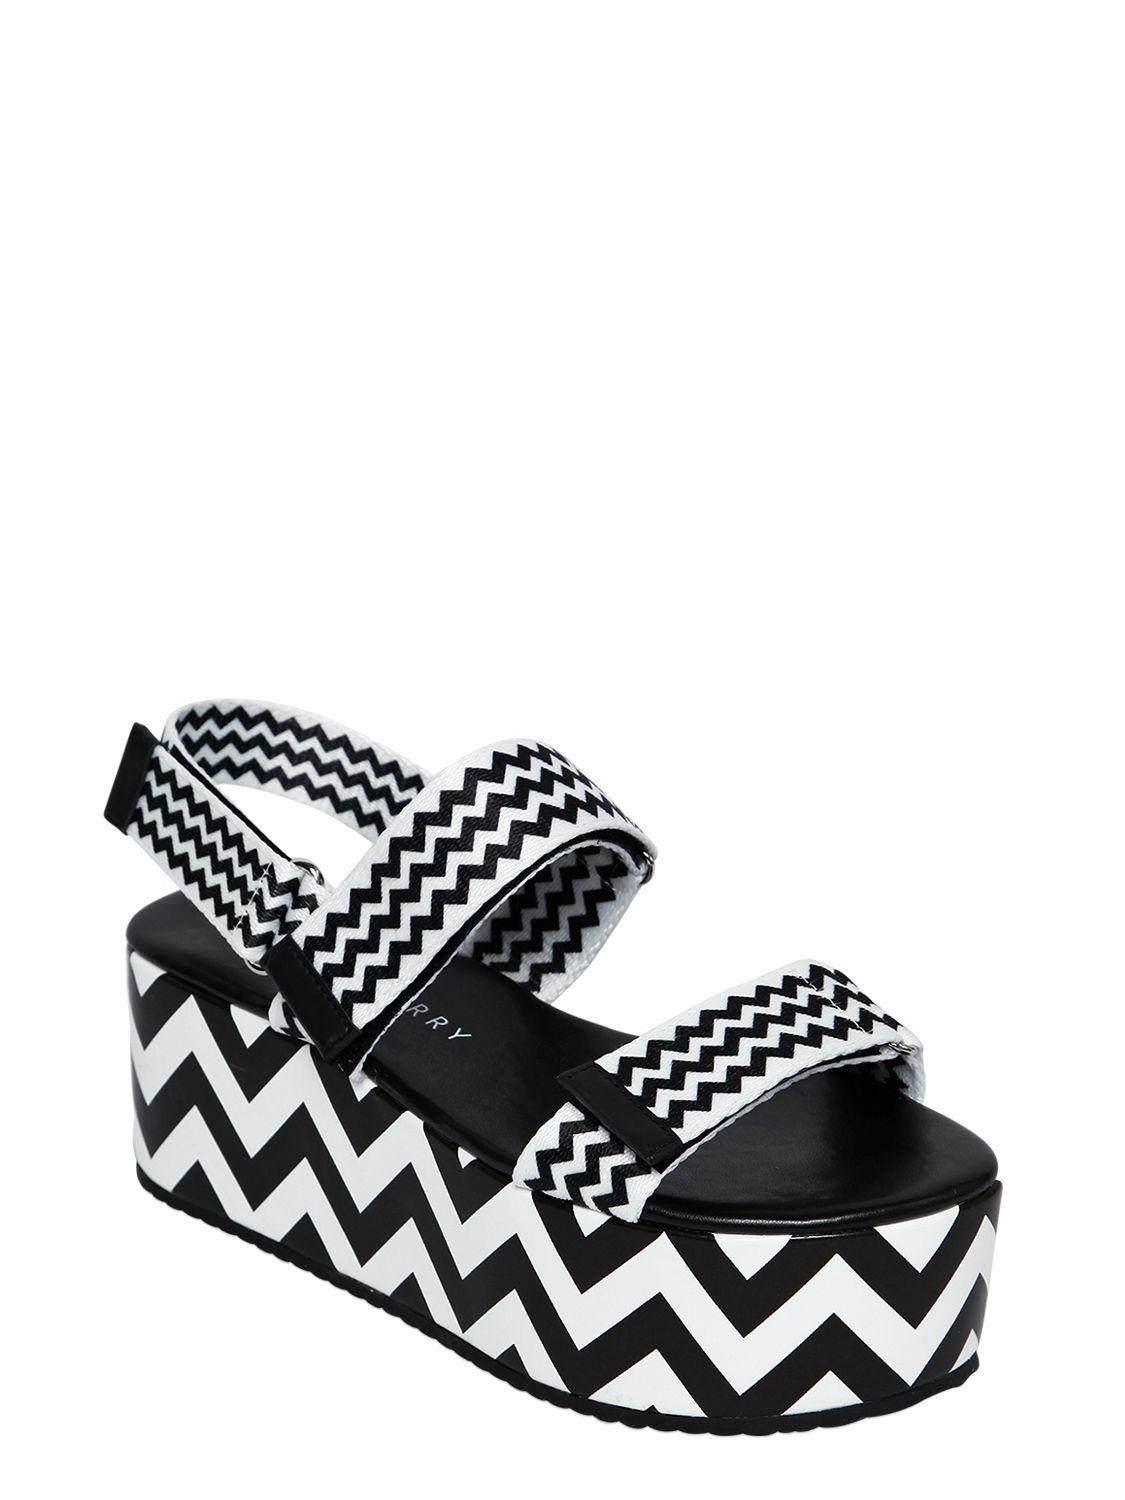 fb01f2d4b4e8a8 Lyst - Katy Perry 70mm Zoey Nylon Webbing Wedge Sandals in Black